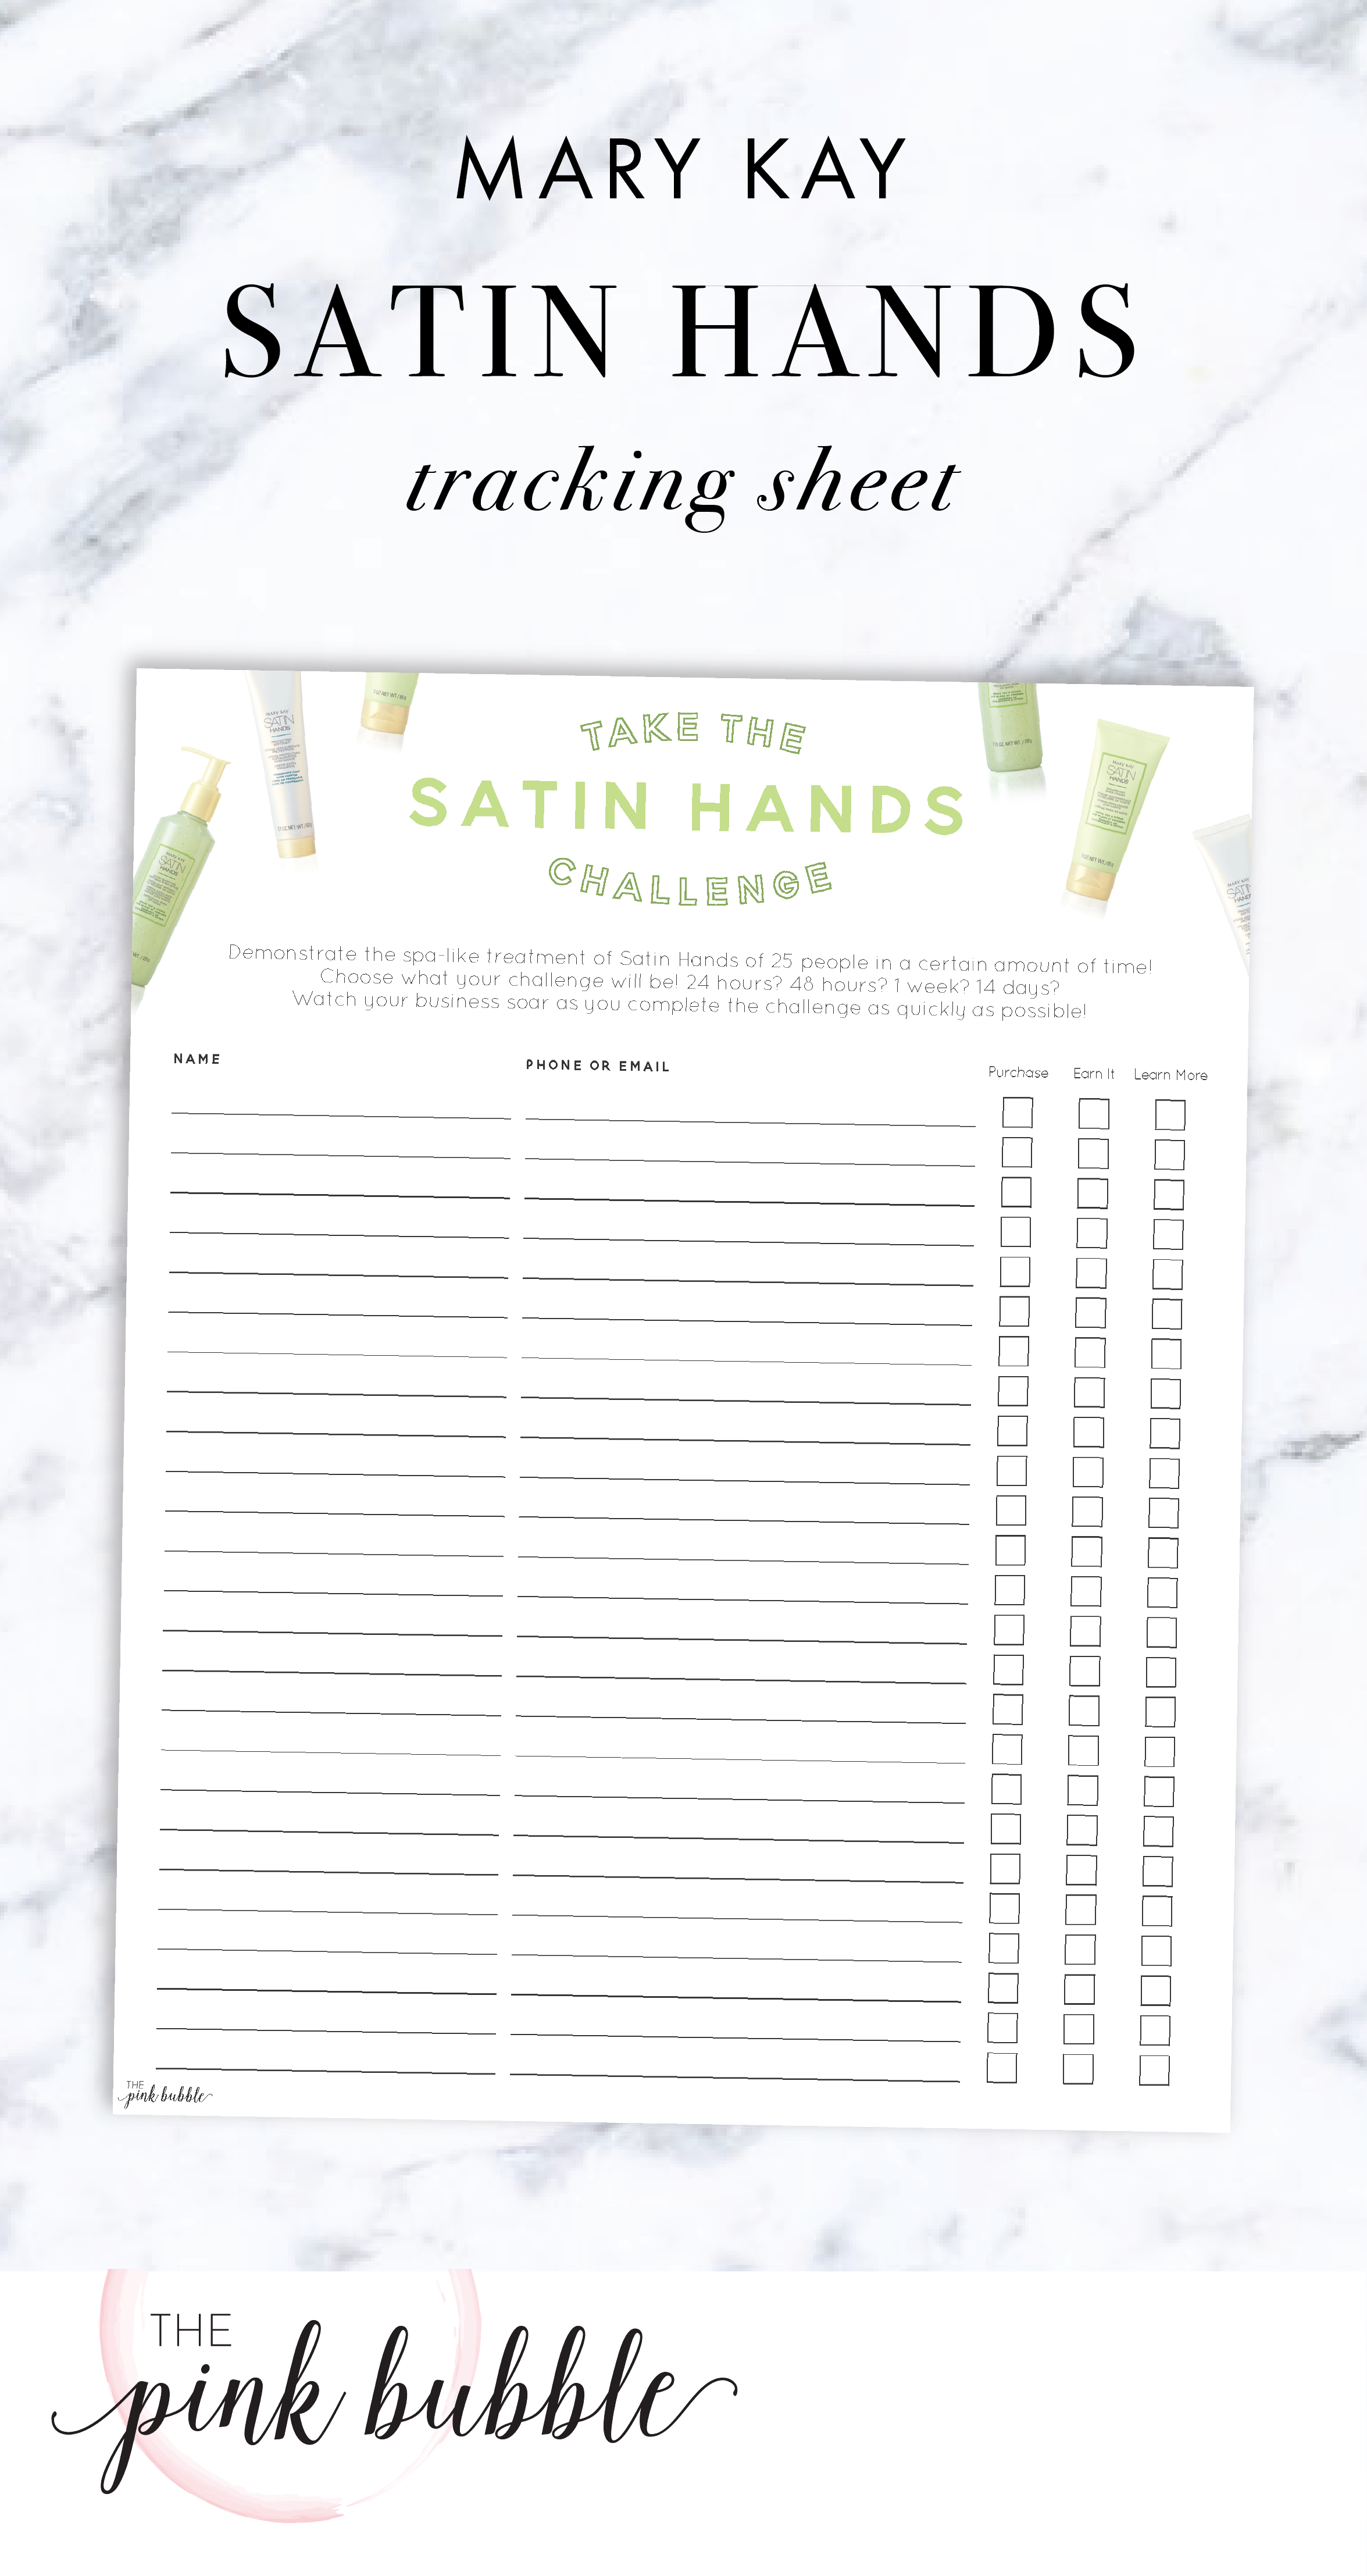 Mary Kay Satin Hands Challenge Tracking Sheet Find It Only At Www